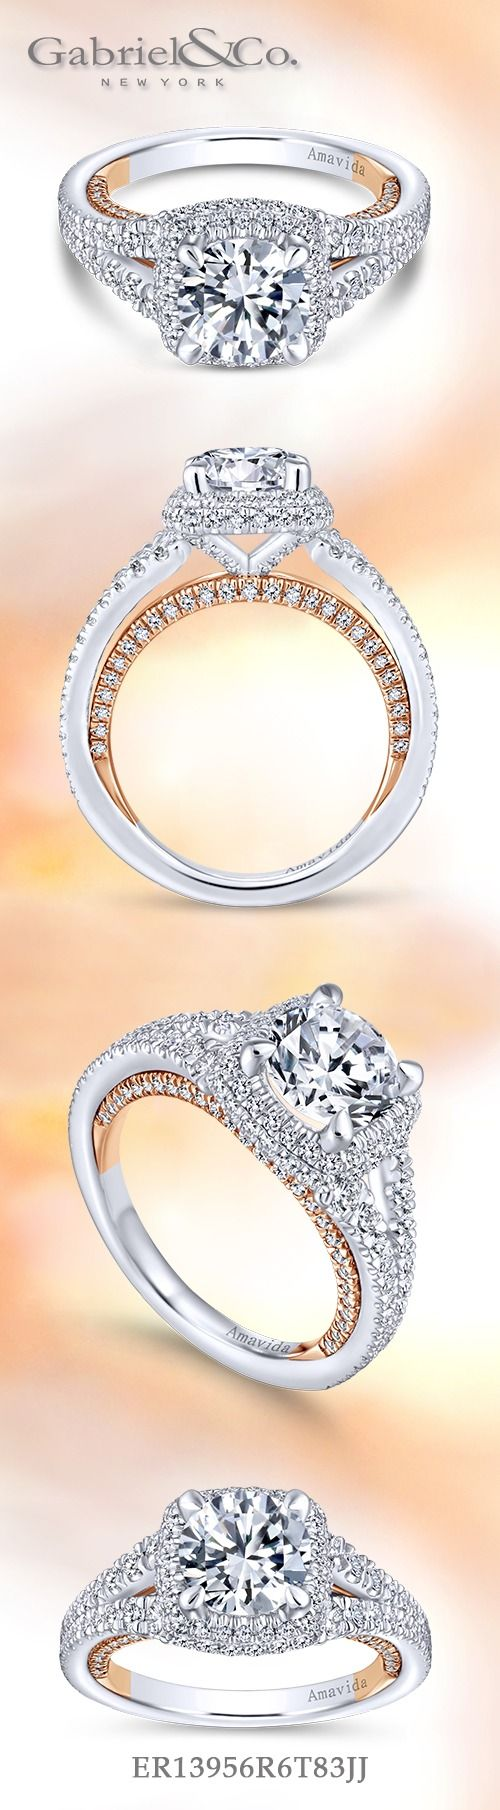 Gabriel & Co.-Voted #1 Most Preferred Fine Jewelry and Bridal Brand. 18k White Gold / Rose Gold Round Halo Engagement Ring